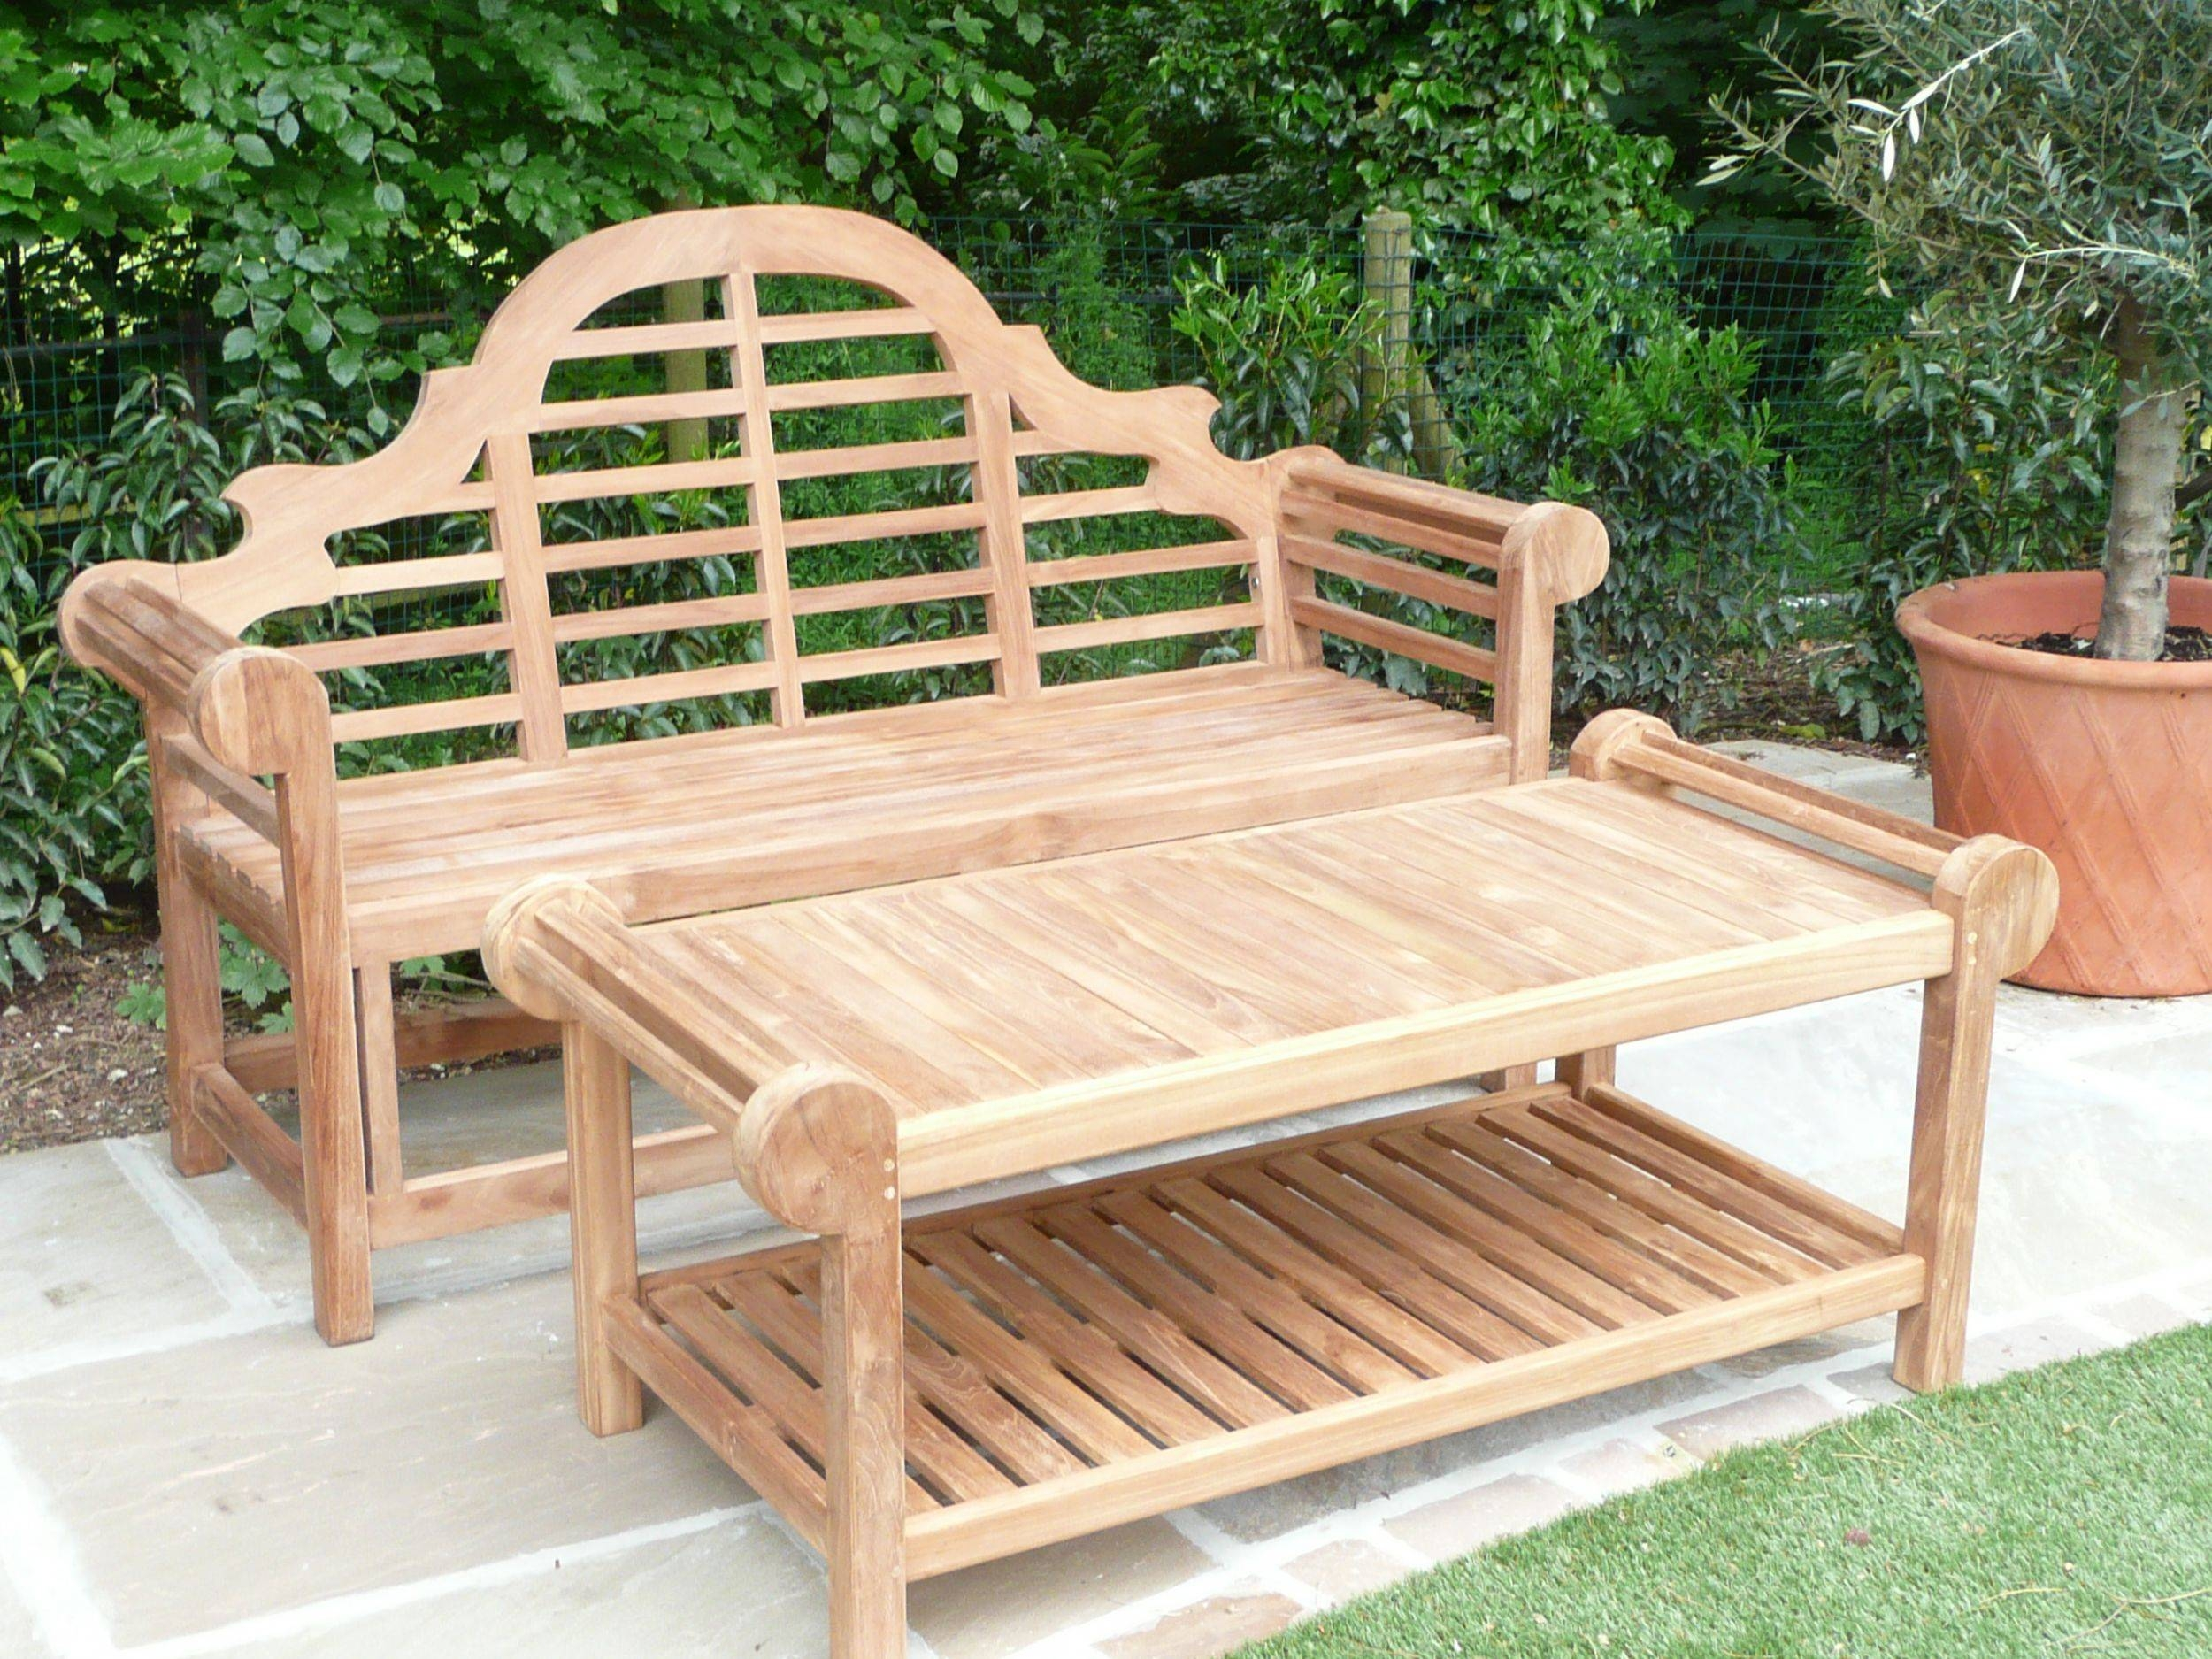 Lutyens Teak Bench & Coffee Table – Humber Imports Uk | Humber Imports Regarding Wooden Garden Coffee Tables (Image 17 of 30)